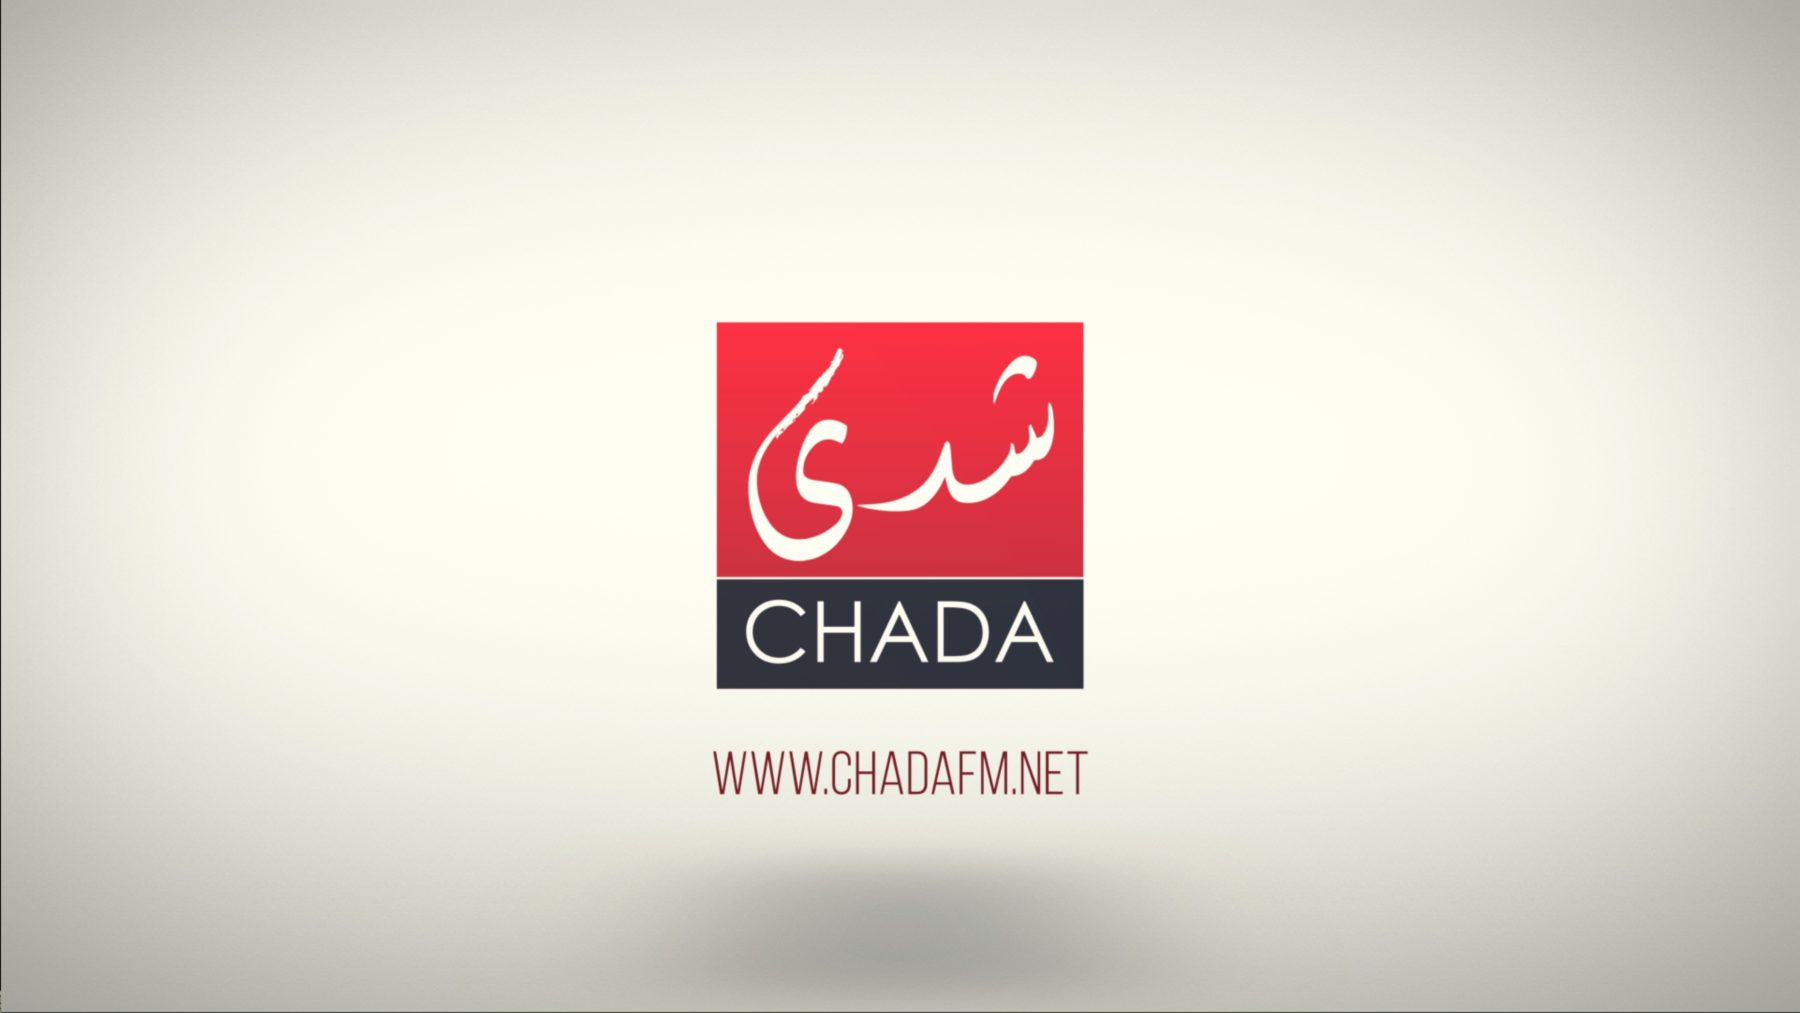 Station jingle chada tv marroco habillage Tv Maroc